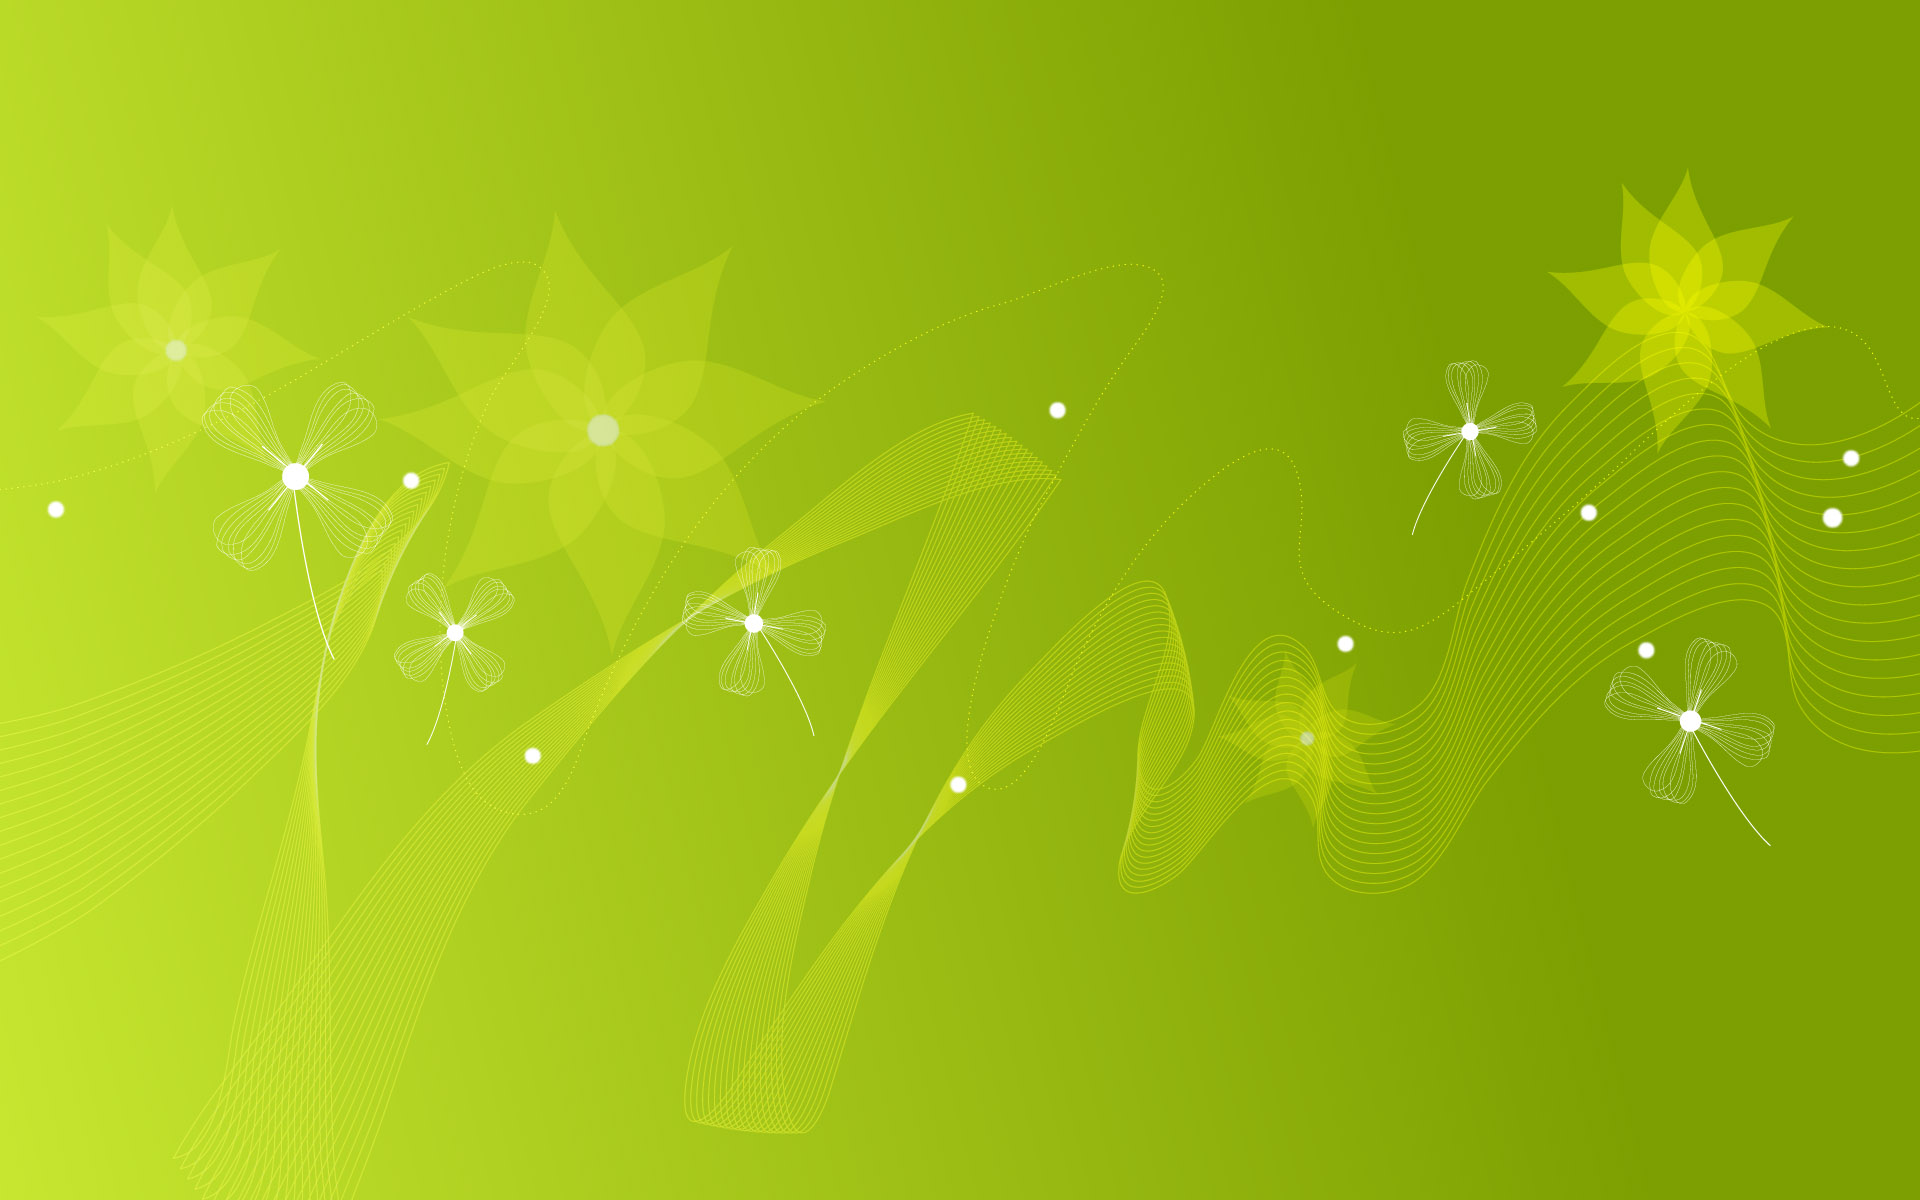 Light green background images  free pictures 1920x1200